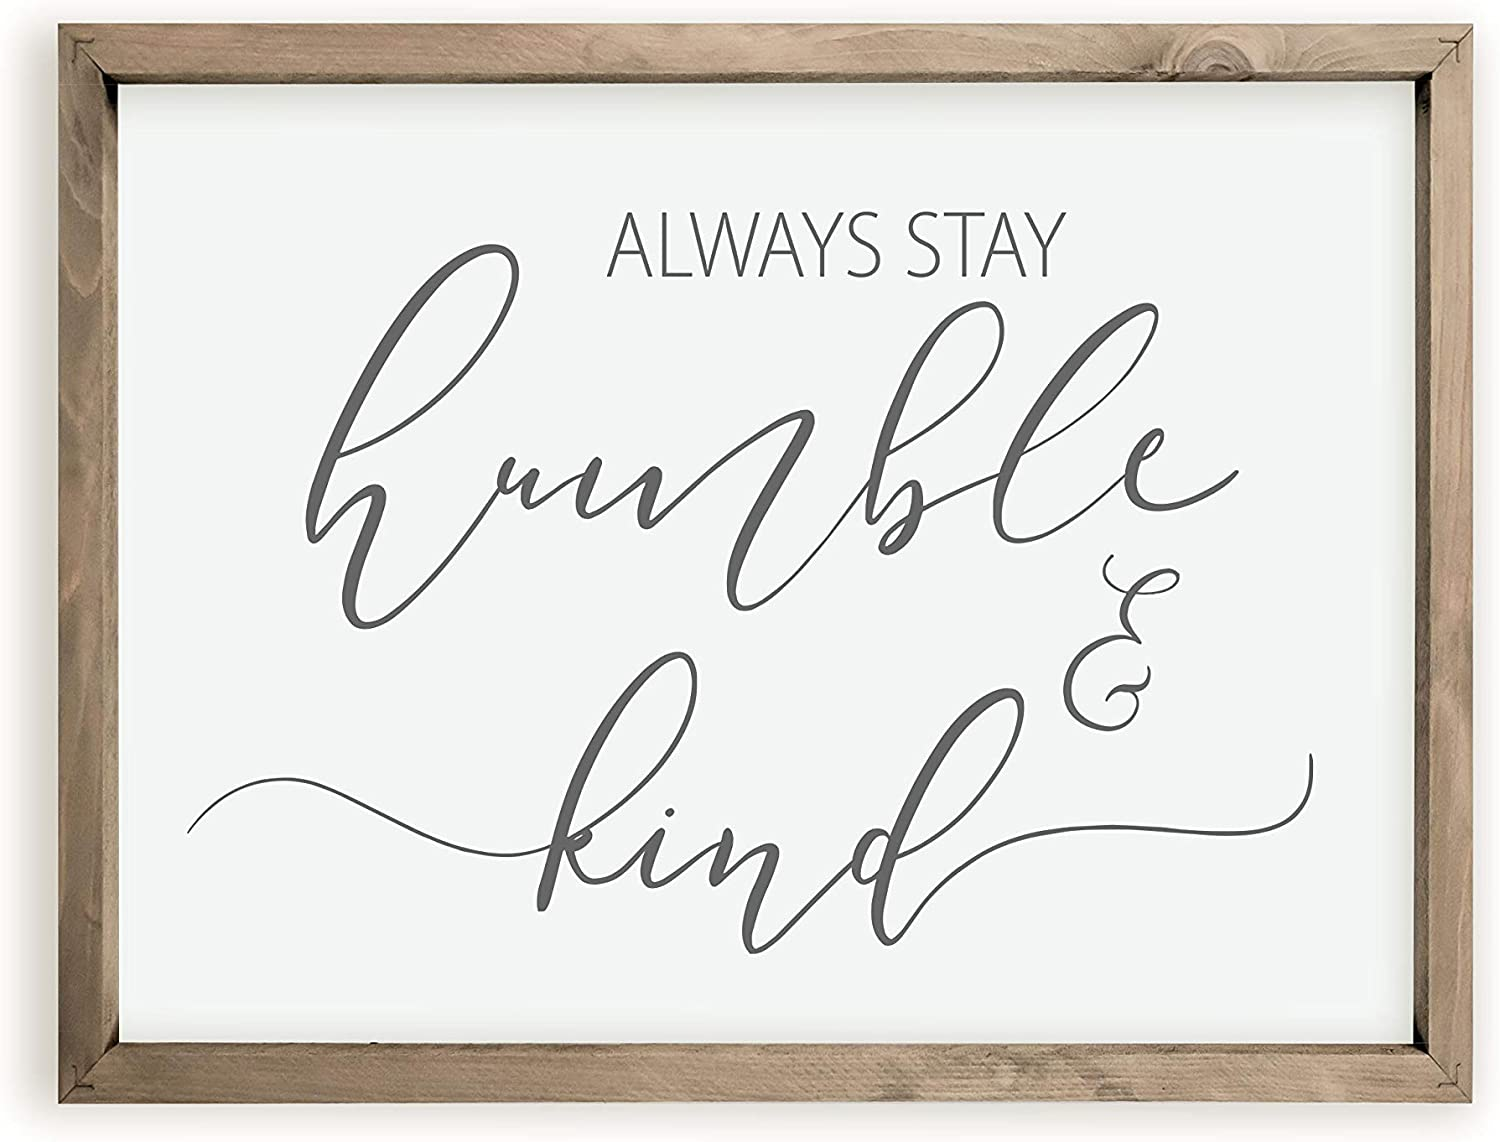 Always Stay Humble and Kind Framed Wood Farmhouse Wall Sign 12x15